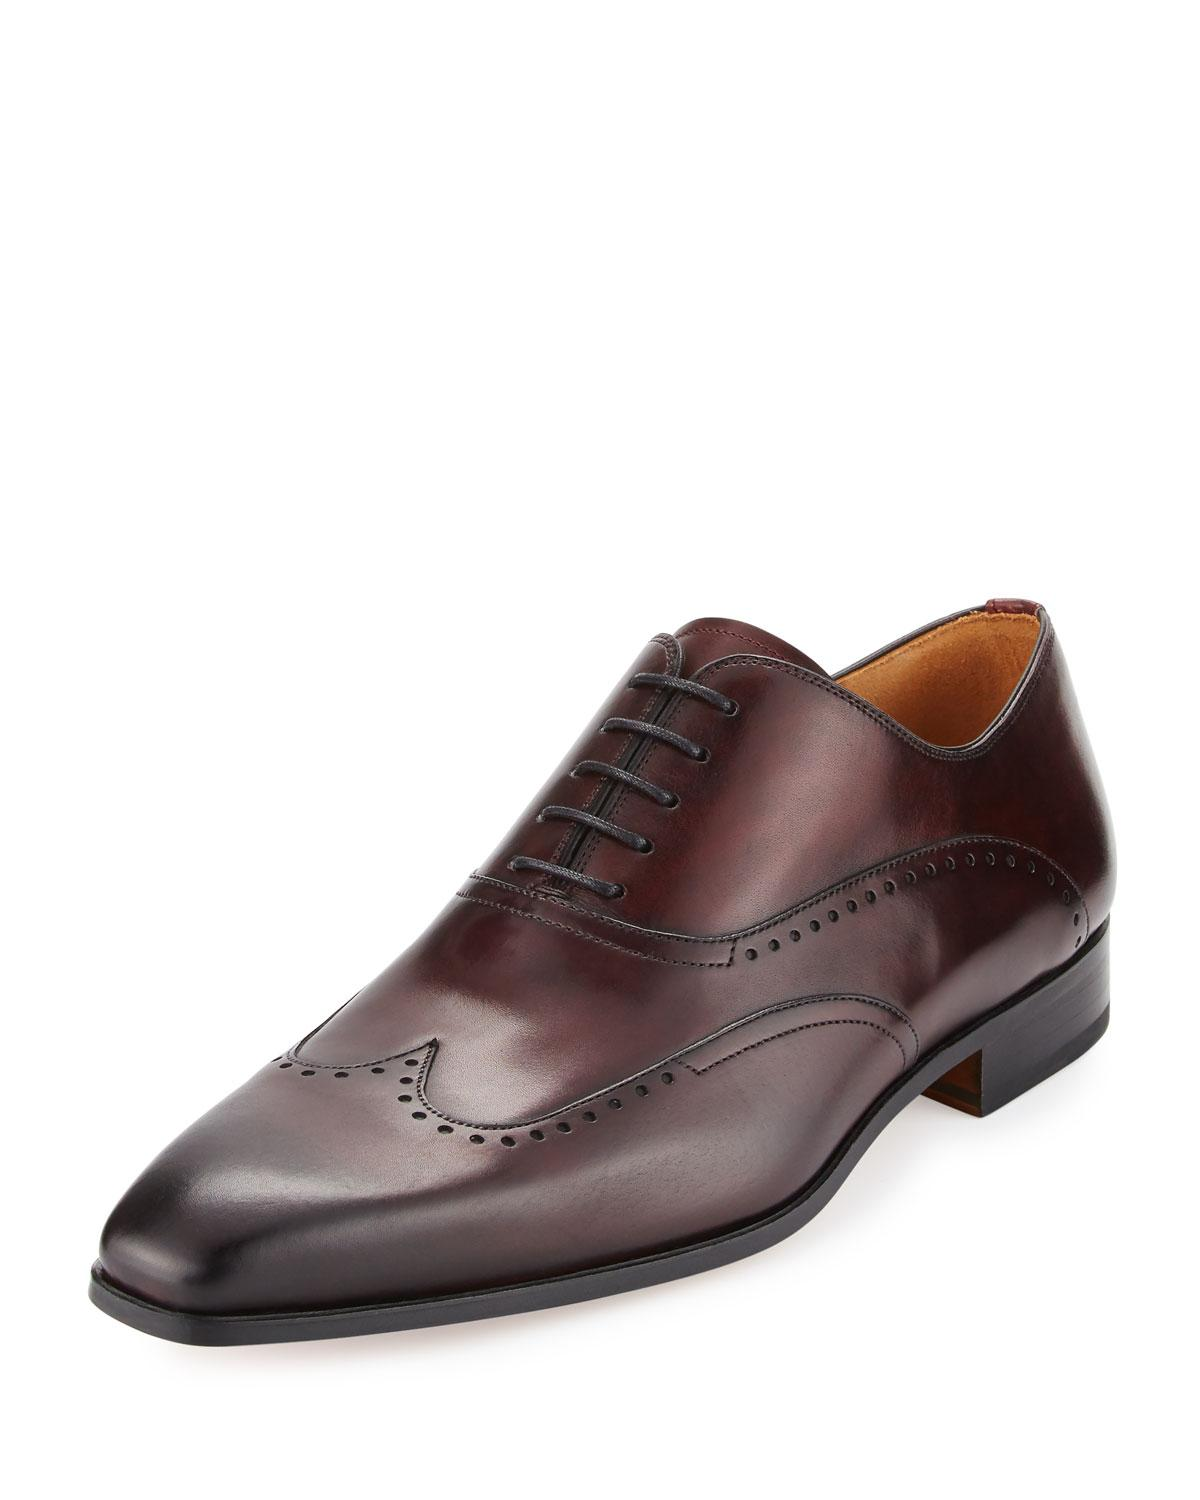 Neiman Marcus Hand-antiqued Leather Wing-tip Oxford, Burgundy In Purple